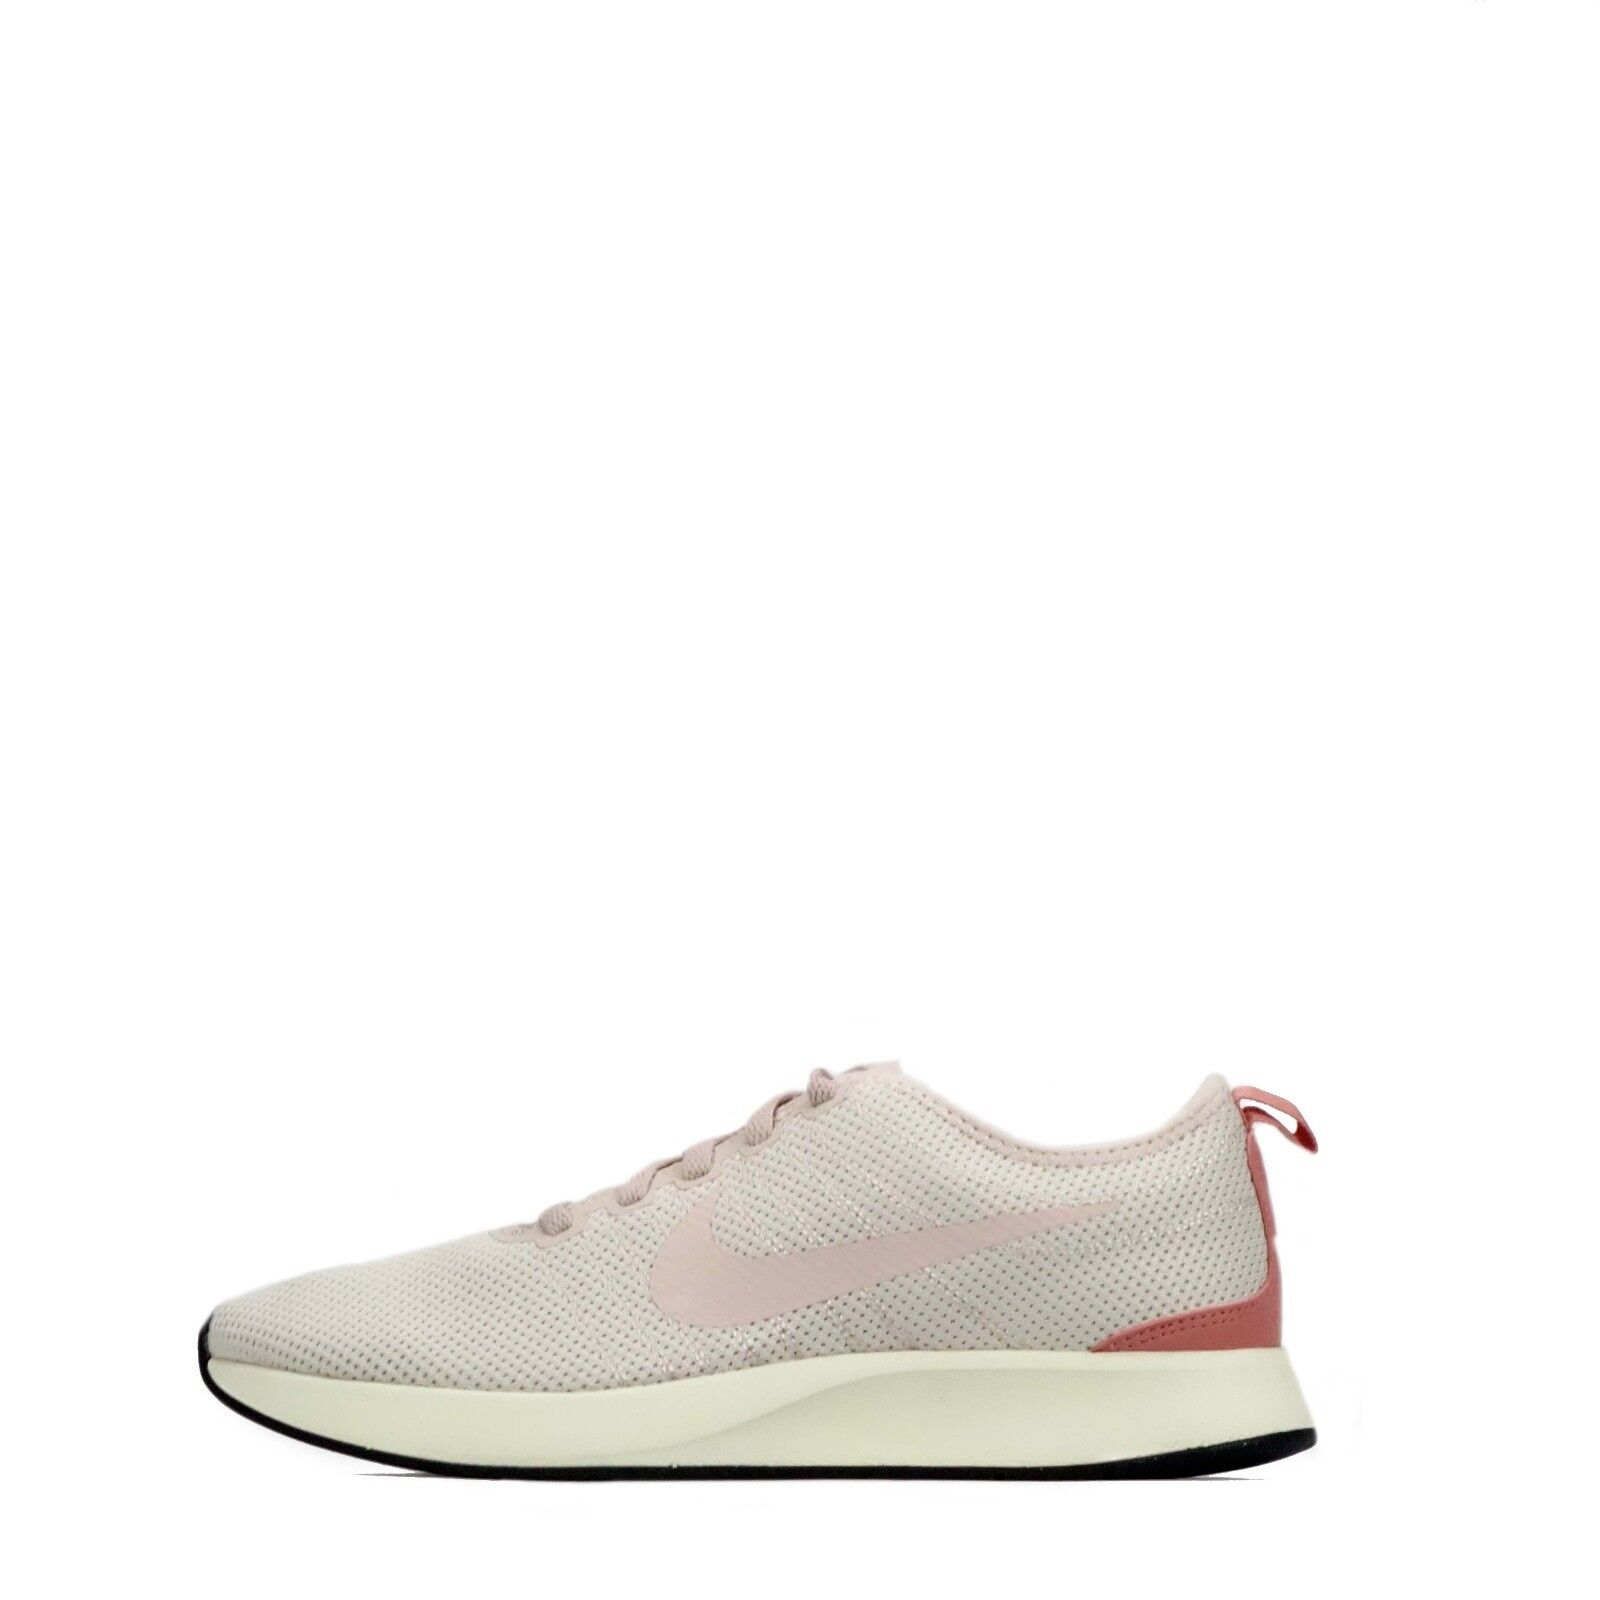 Nike Dualtone Racer Women's Shoes Silt Red/Stardust Comfortable and good-looking